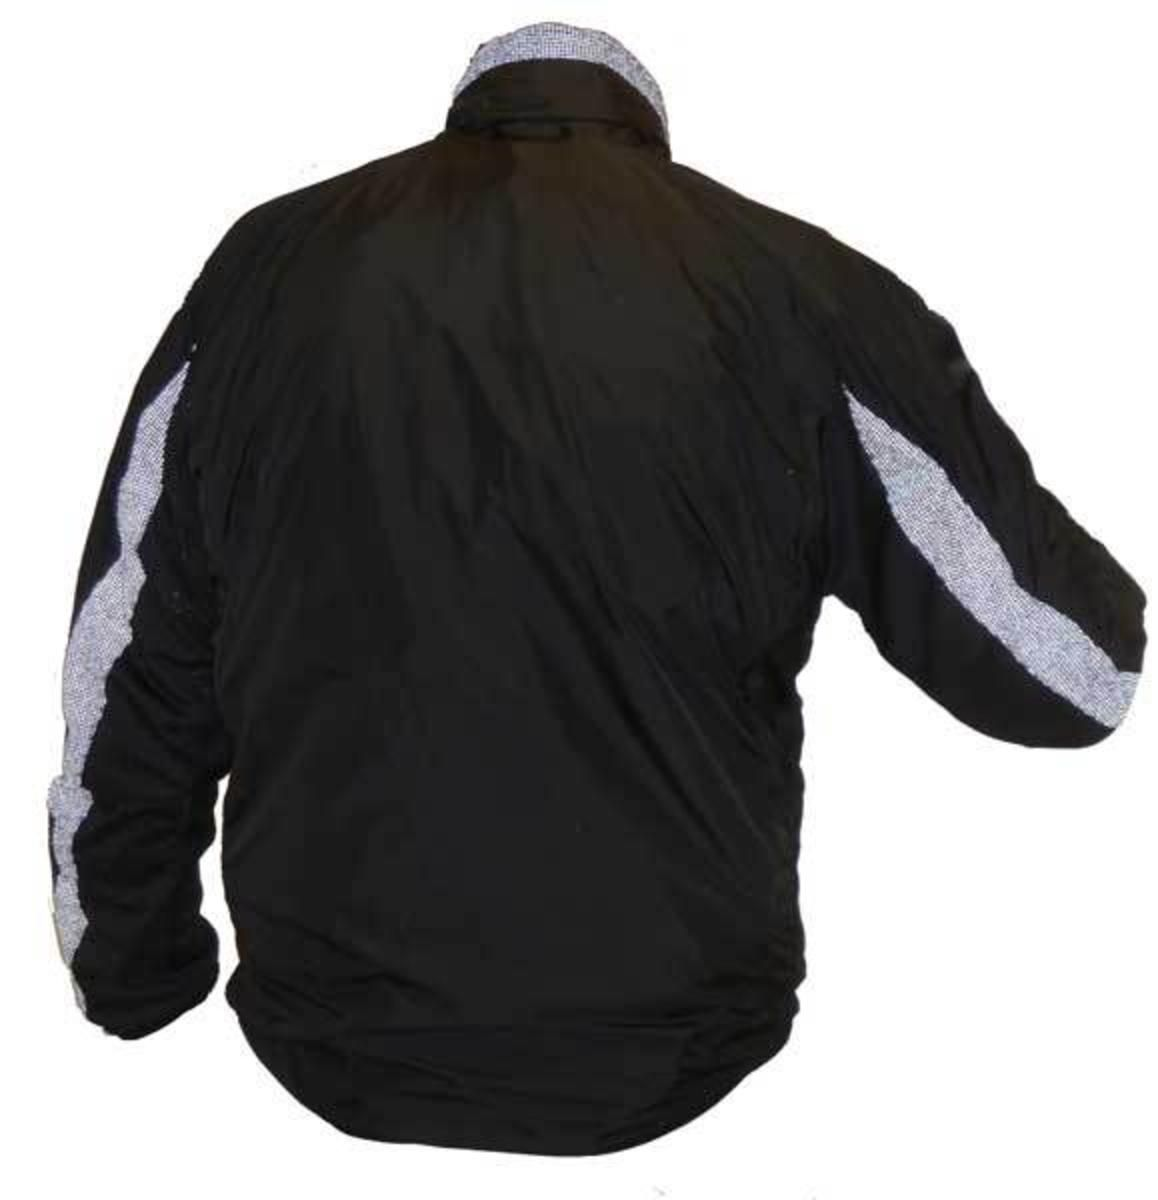 8b3cd732a78a Warm & Safe Generation 4 Men's Heated Liner - 12V Motorcycle - The Warming  Store